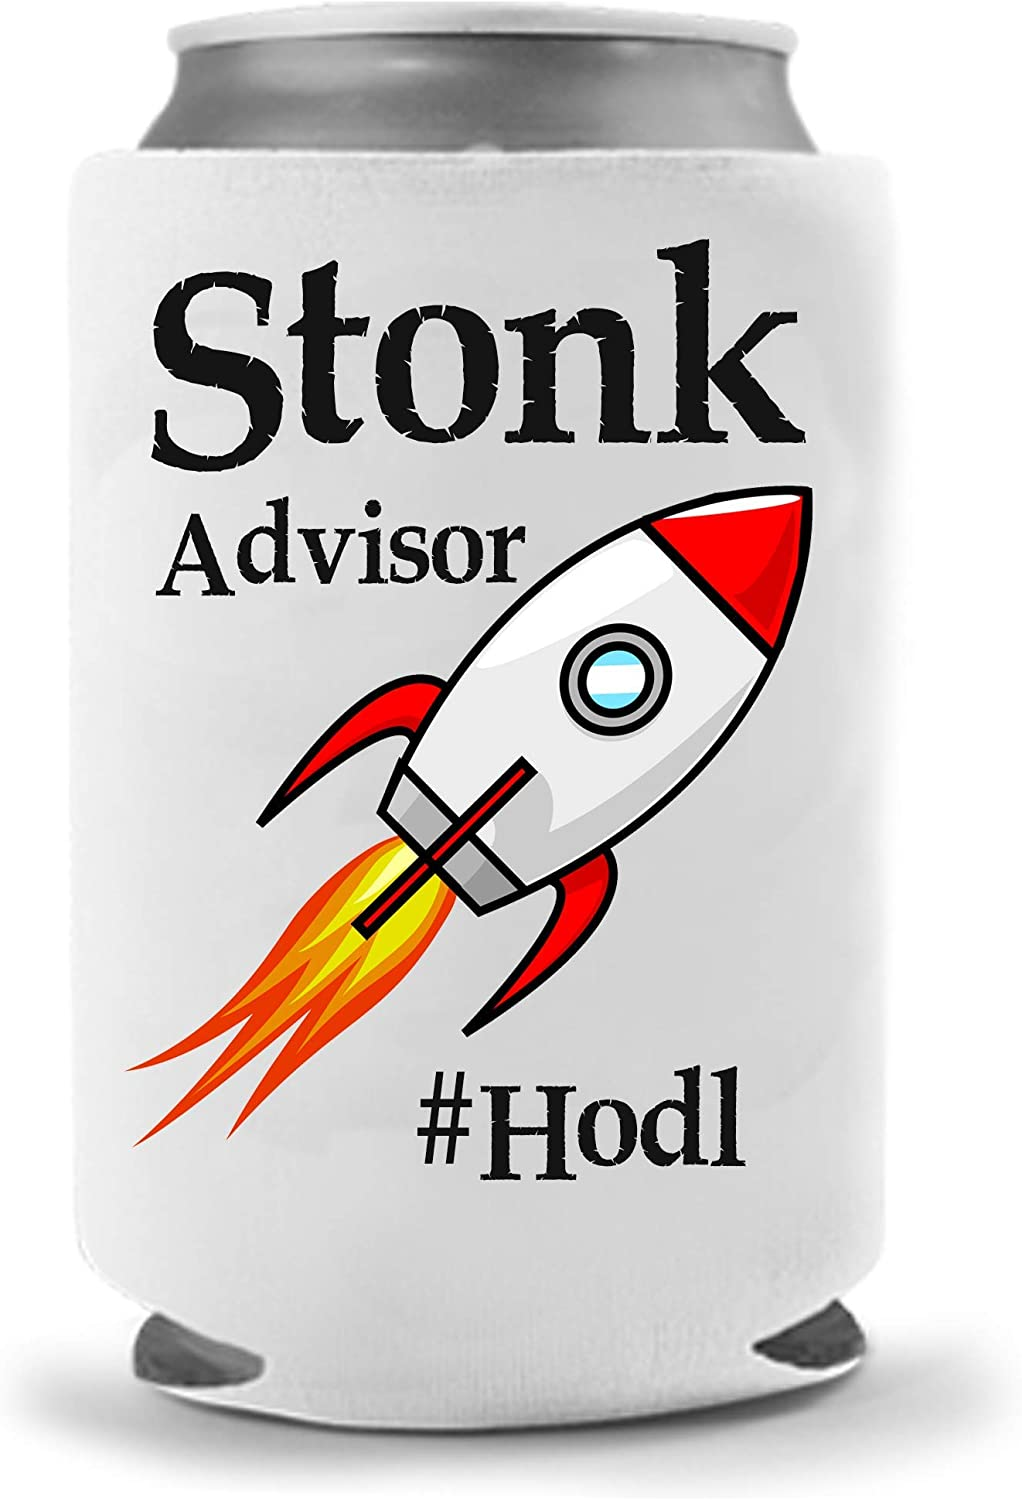 Cool Coast Products - Stonk Advisor HODL Meme Beer Coolie | Funny Parody Coolers | Drink Gifts | Gag Party Huggie | White Elephant | Beer Beverage Holder | Craft Beer Gifts | Insulated Neoprene